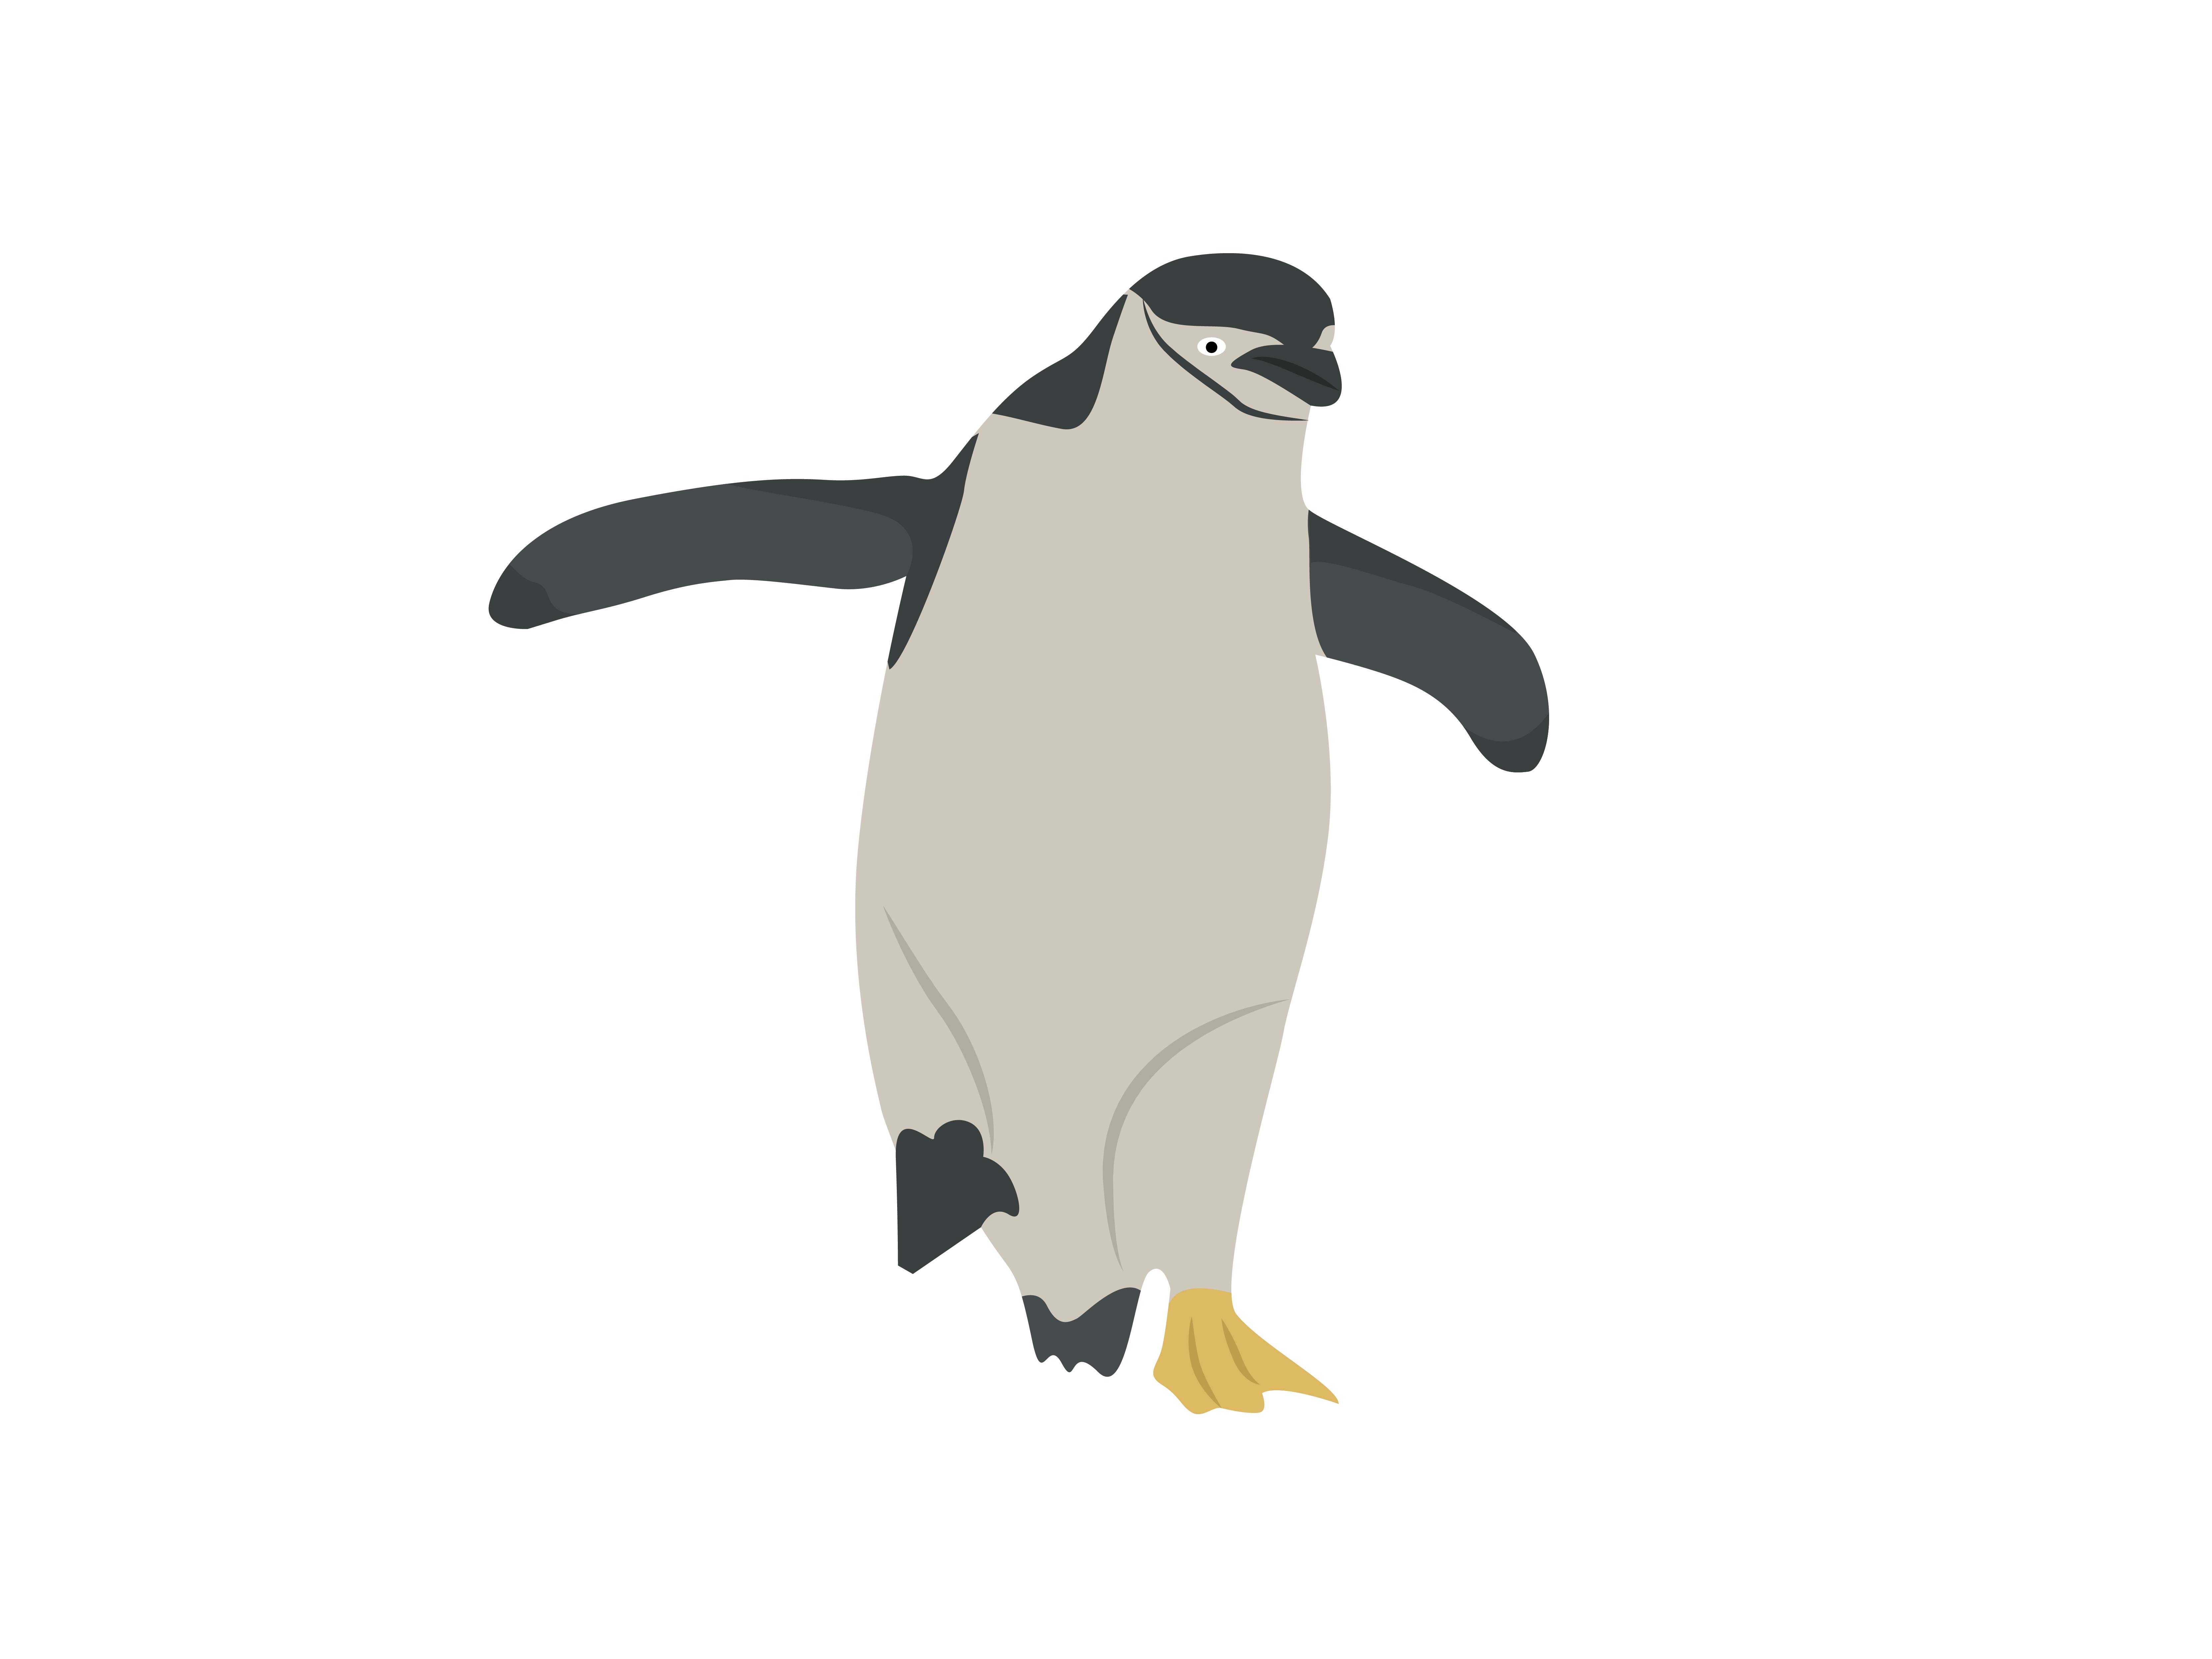 Download Free Dancing Penguins Animal Graphic By Archshape Creative Fabrica for Cricut Explore, Silhouette and other cutting machines.